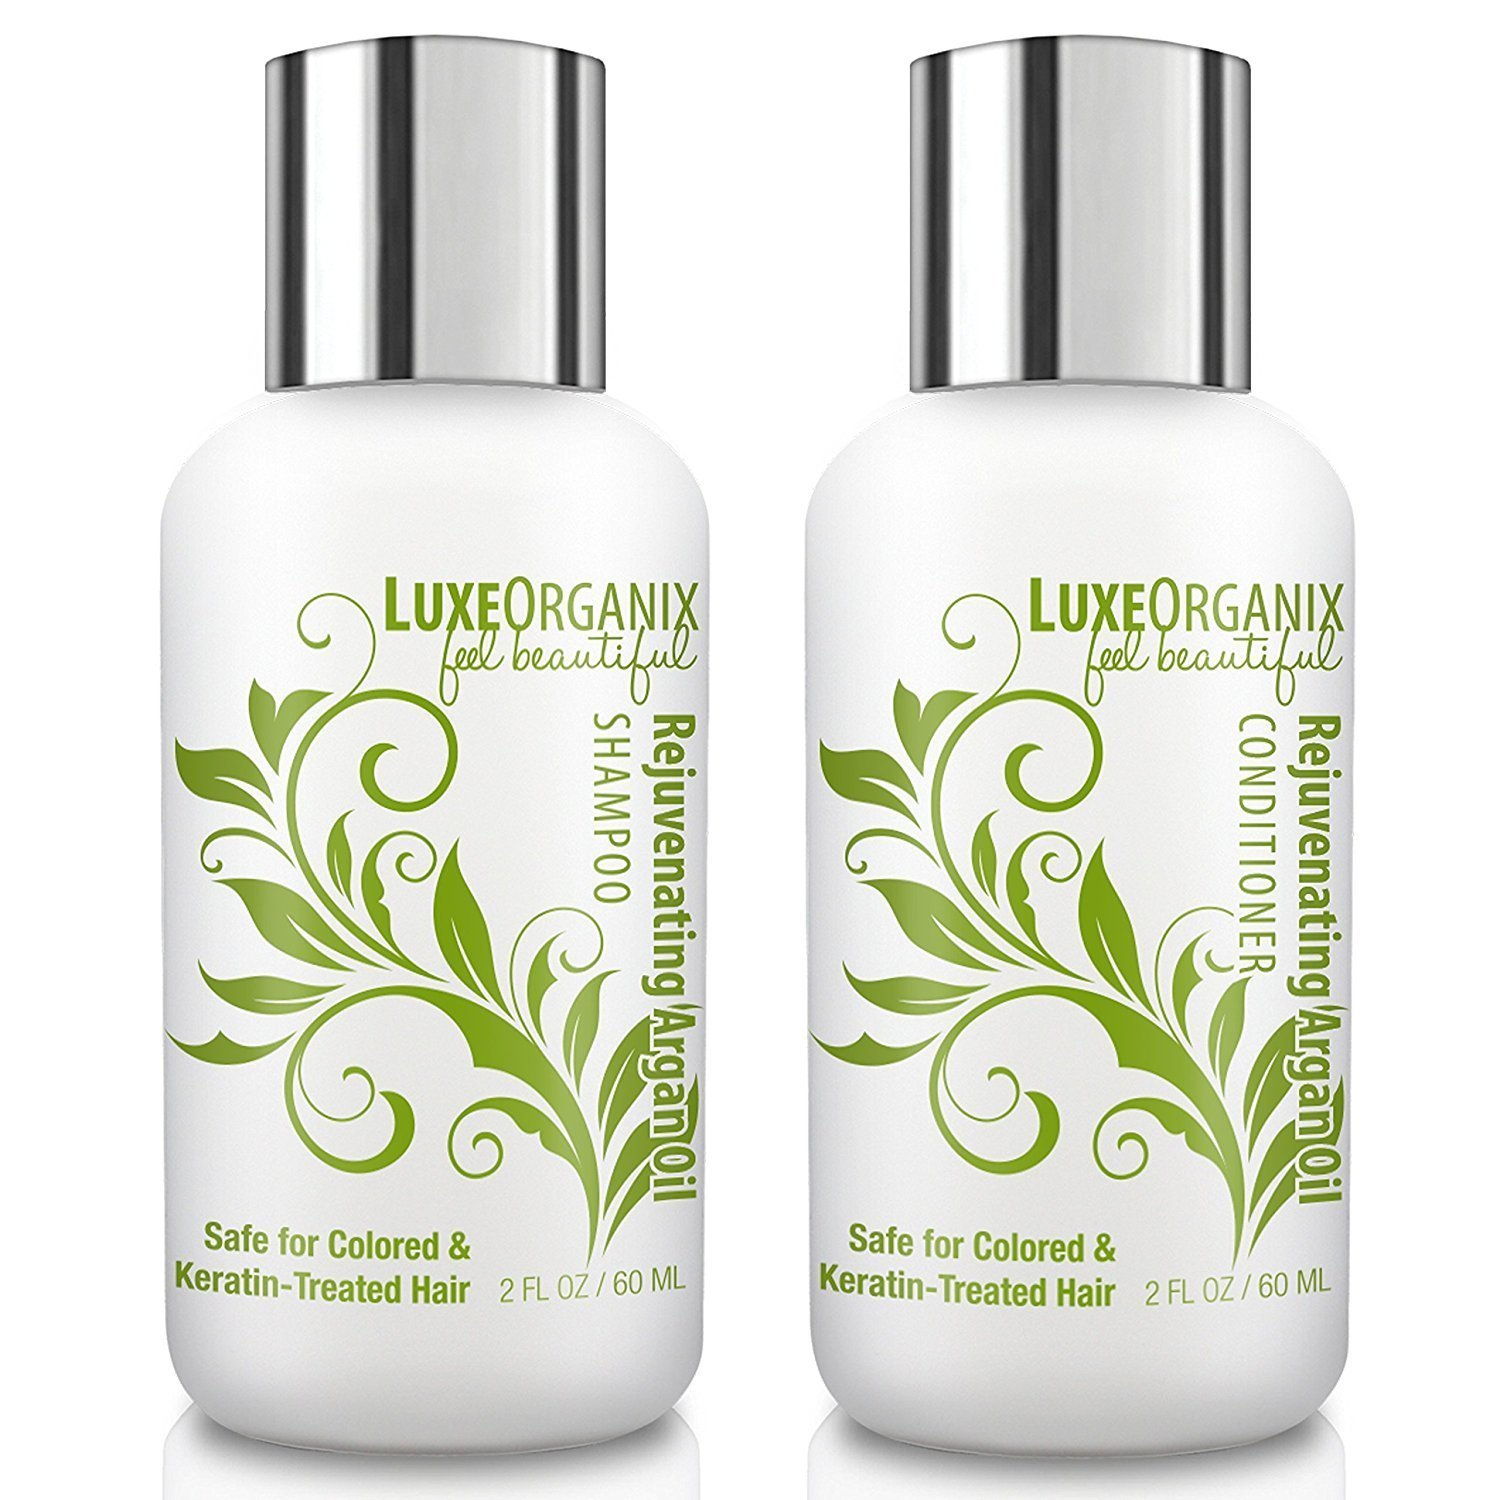 LuxeOrganix Travel Shampoo and Conditioner Set, Sulfate Free, Safe for Color Treated, Keratin Treated Hair - Moroccan Argan Oil (2.0 oz each) by LuxeOrganix (Image #1)